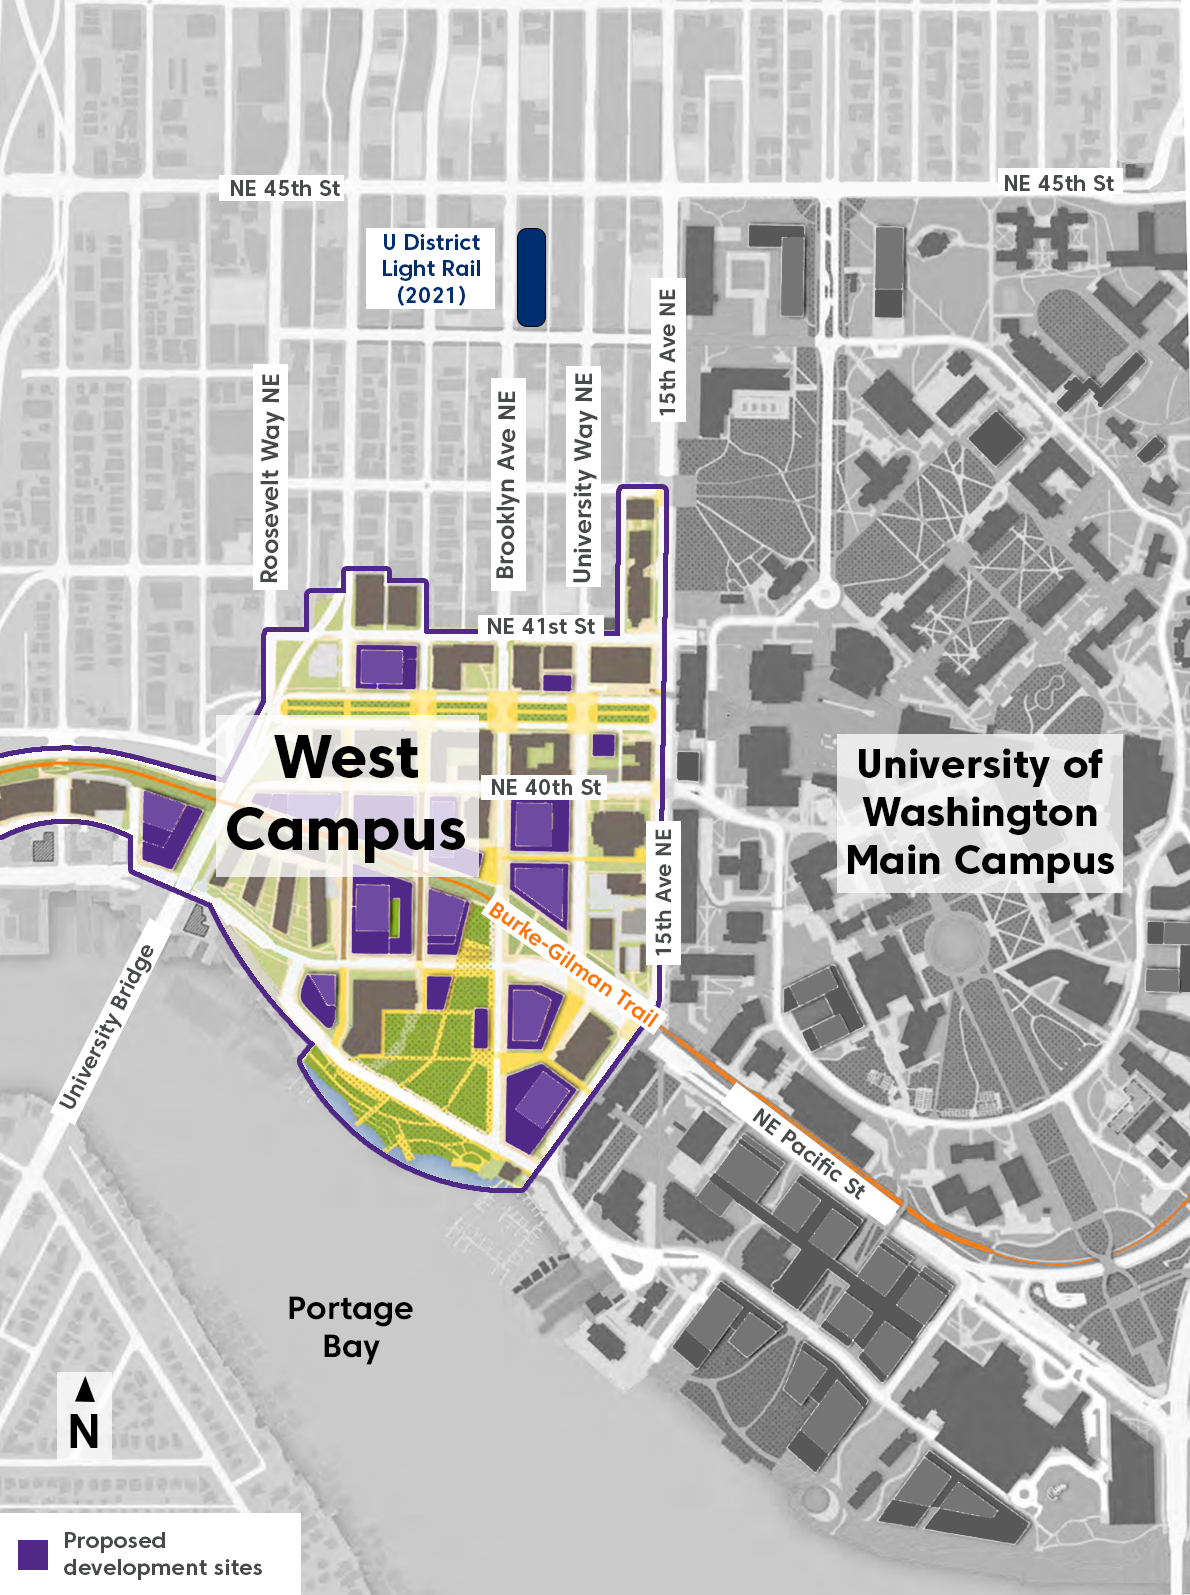 university washington campus map Former Cleantech Executive Leads Development Of University Of